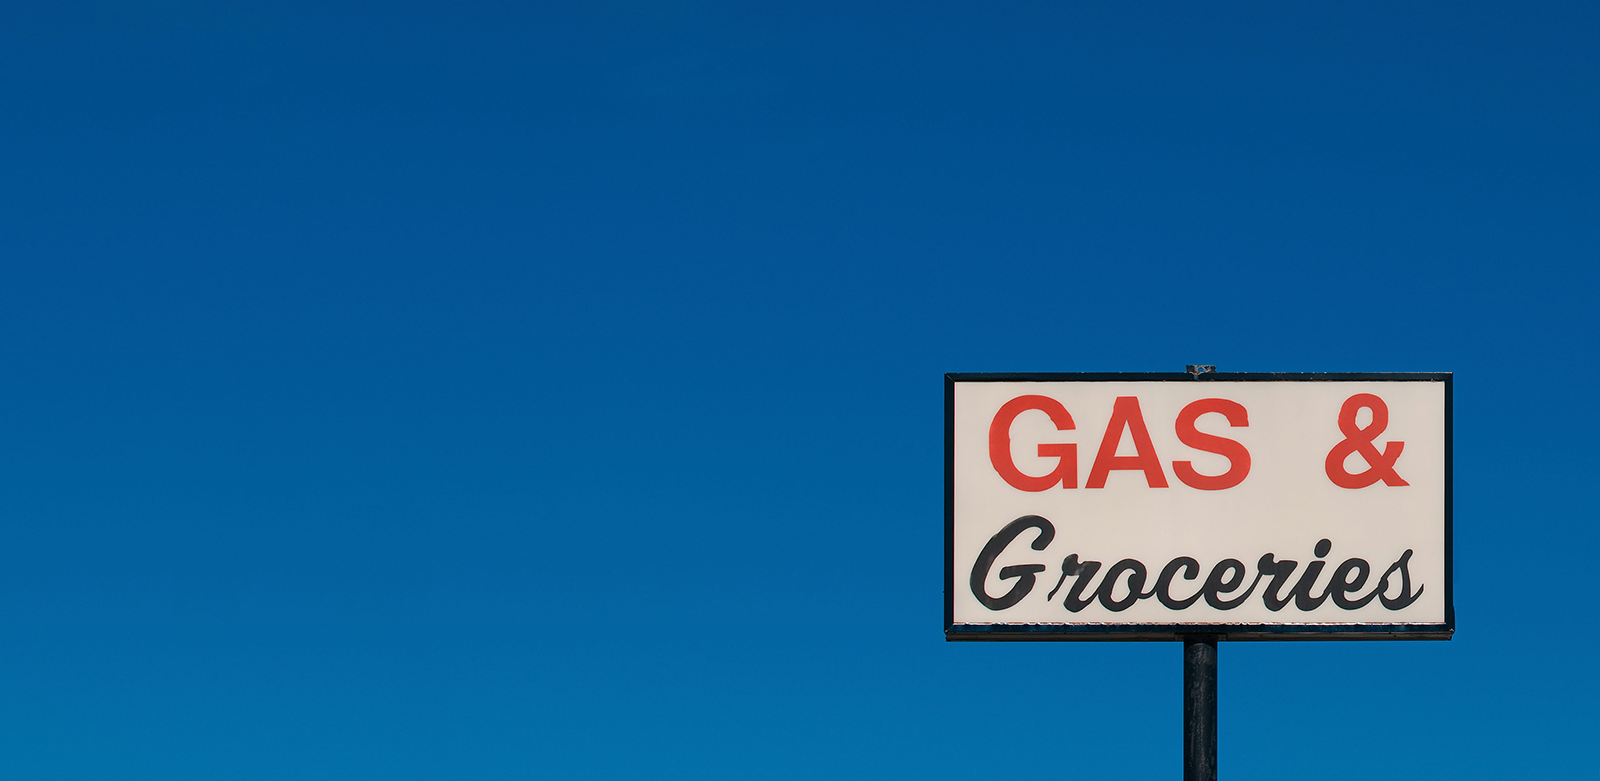 gas-and-groceries-banner